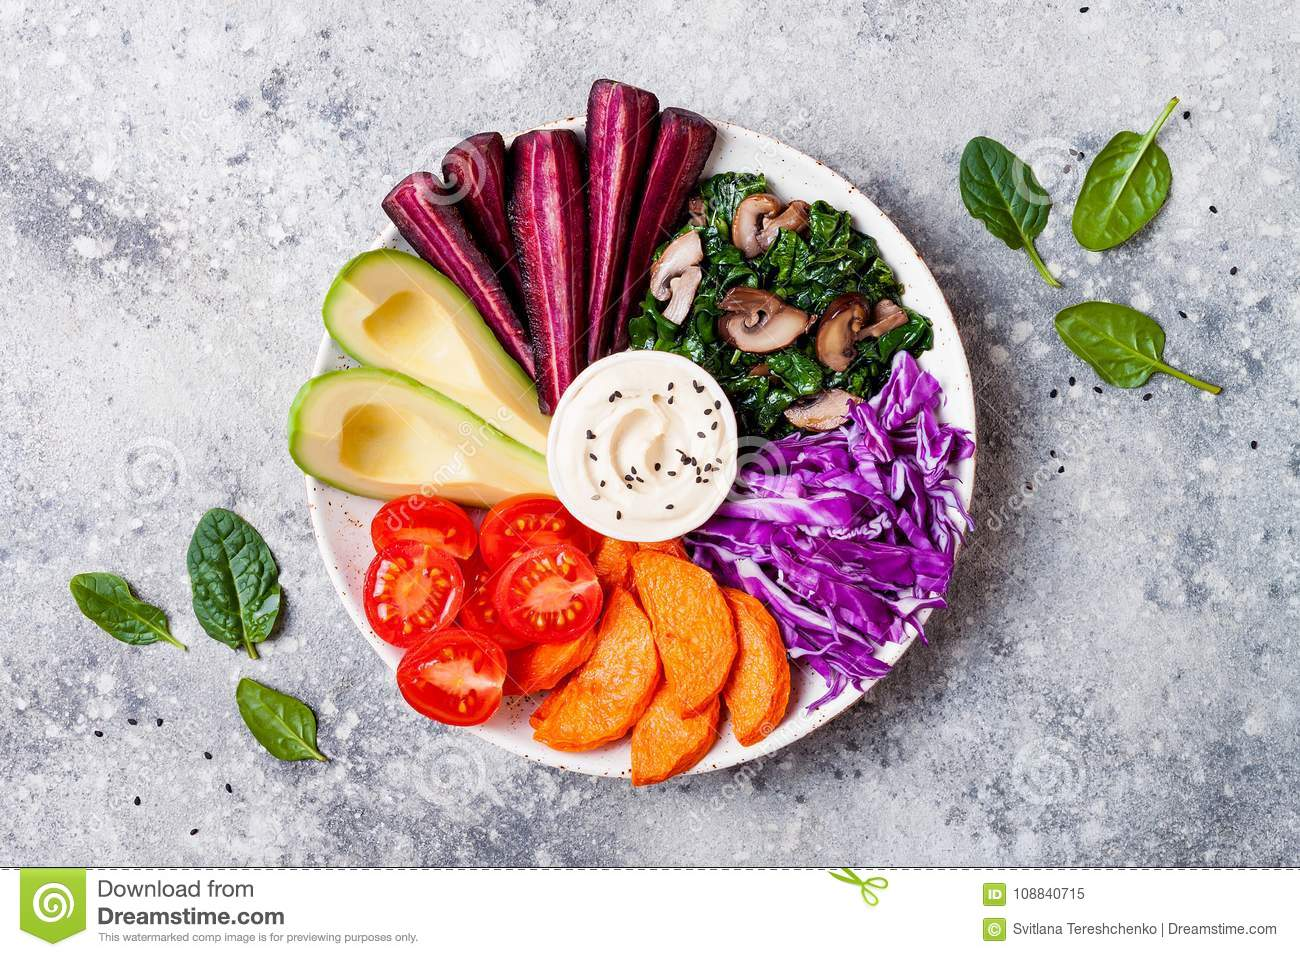 Buddha Bowl With Roasted Butternut Hummus Cabbage Healthy Vegetarian Appetizer Or Snack Platter Winter Veggies Detox Lunch Stock Image Image Of Concrete Lunch 108840715